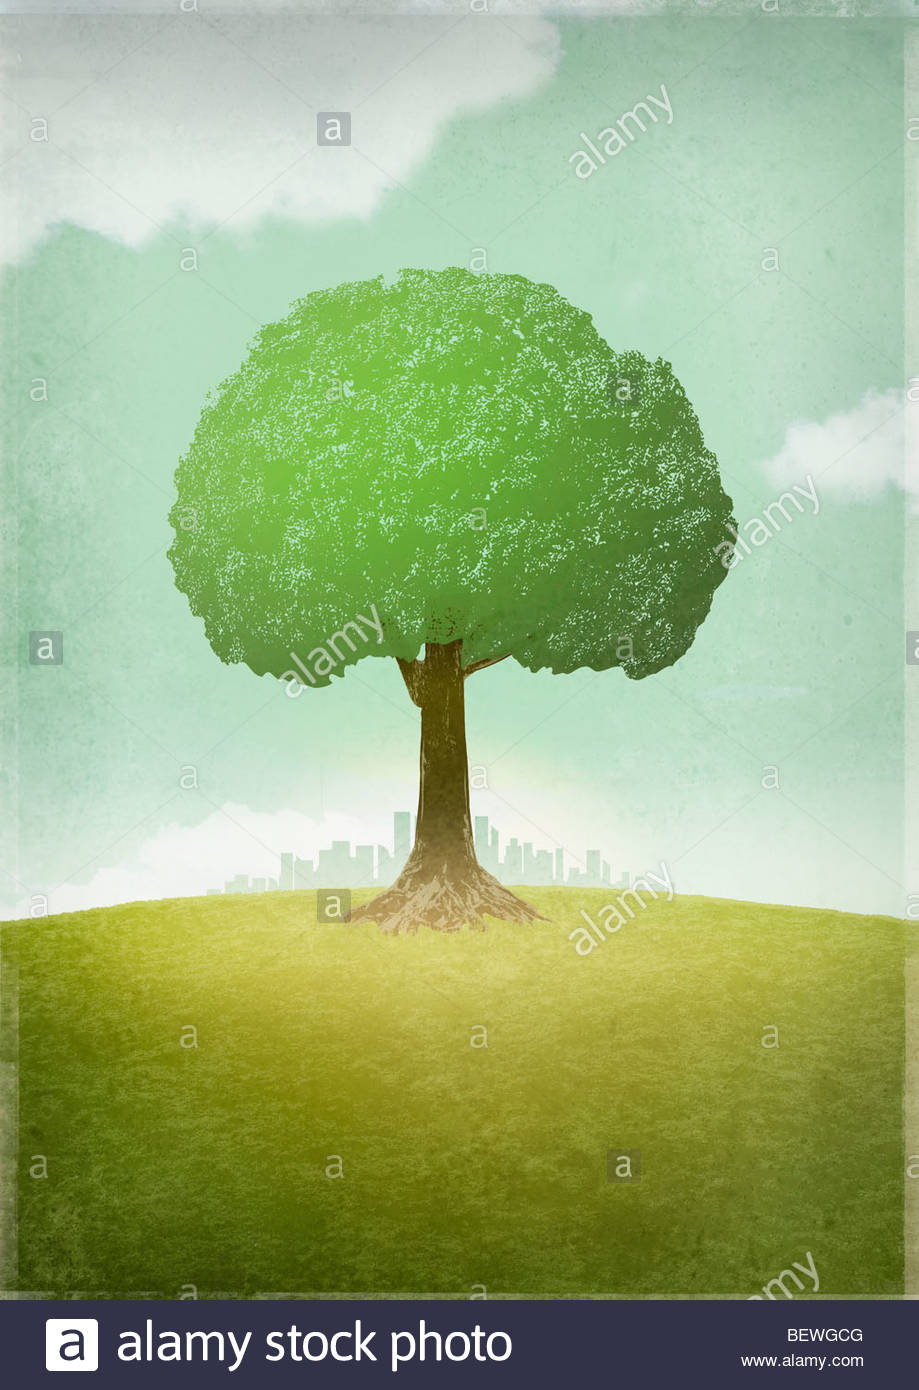 Lone tree away from city - Stock Image